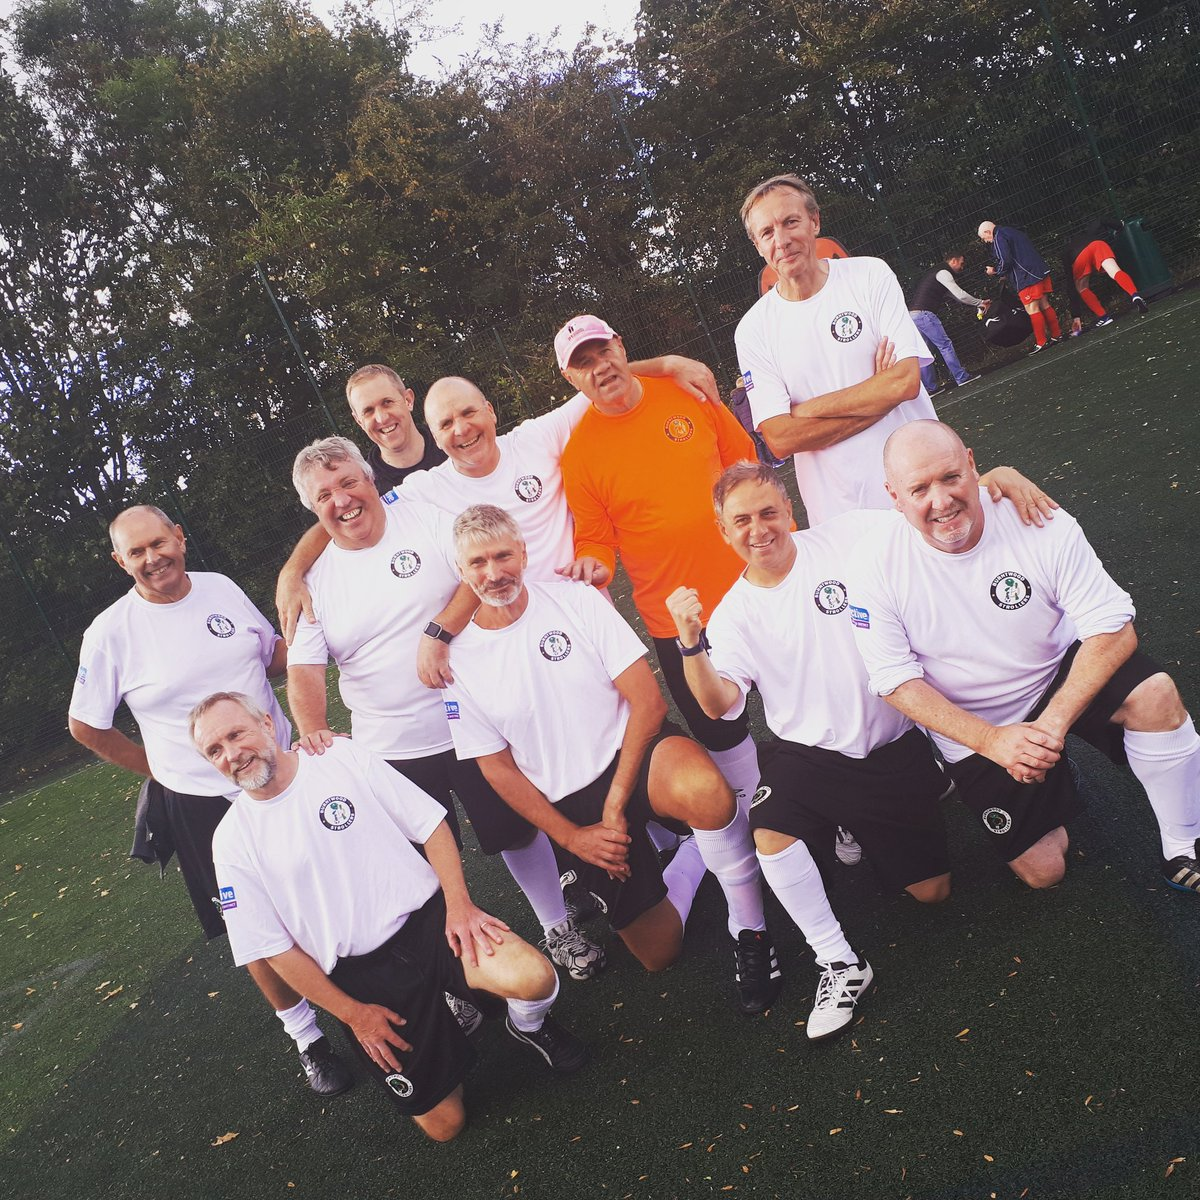 Fantastic effort by Burntwood Strollers who finished in 5th place overall in this year&#39;s National Walking Football Finals! Great effort by all! Well Done Guys  #proud #burntwoodstrollers #WalkingFootball @LDCsportsdevel @Burntwoodstrol1 @SASSOTCSP @StaffordshireFA<br>http://pic.twitter.com/kThpzC5c9W